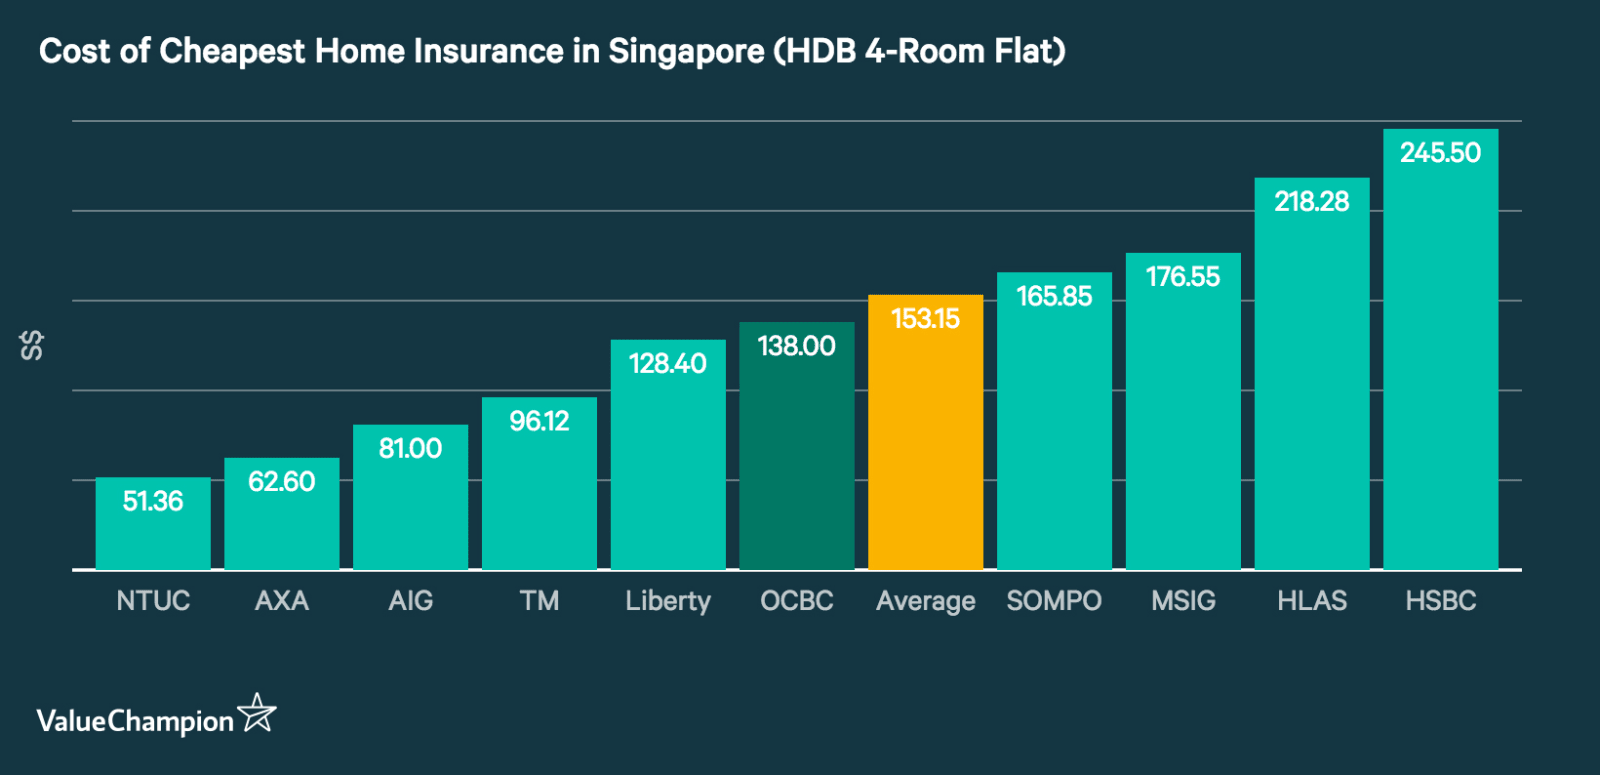 Cost of cheapest home insurance in Singapore based on the premiums for a 4-room HDB flat